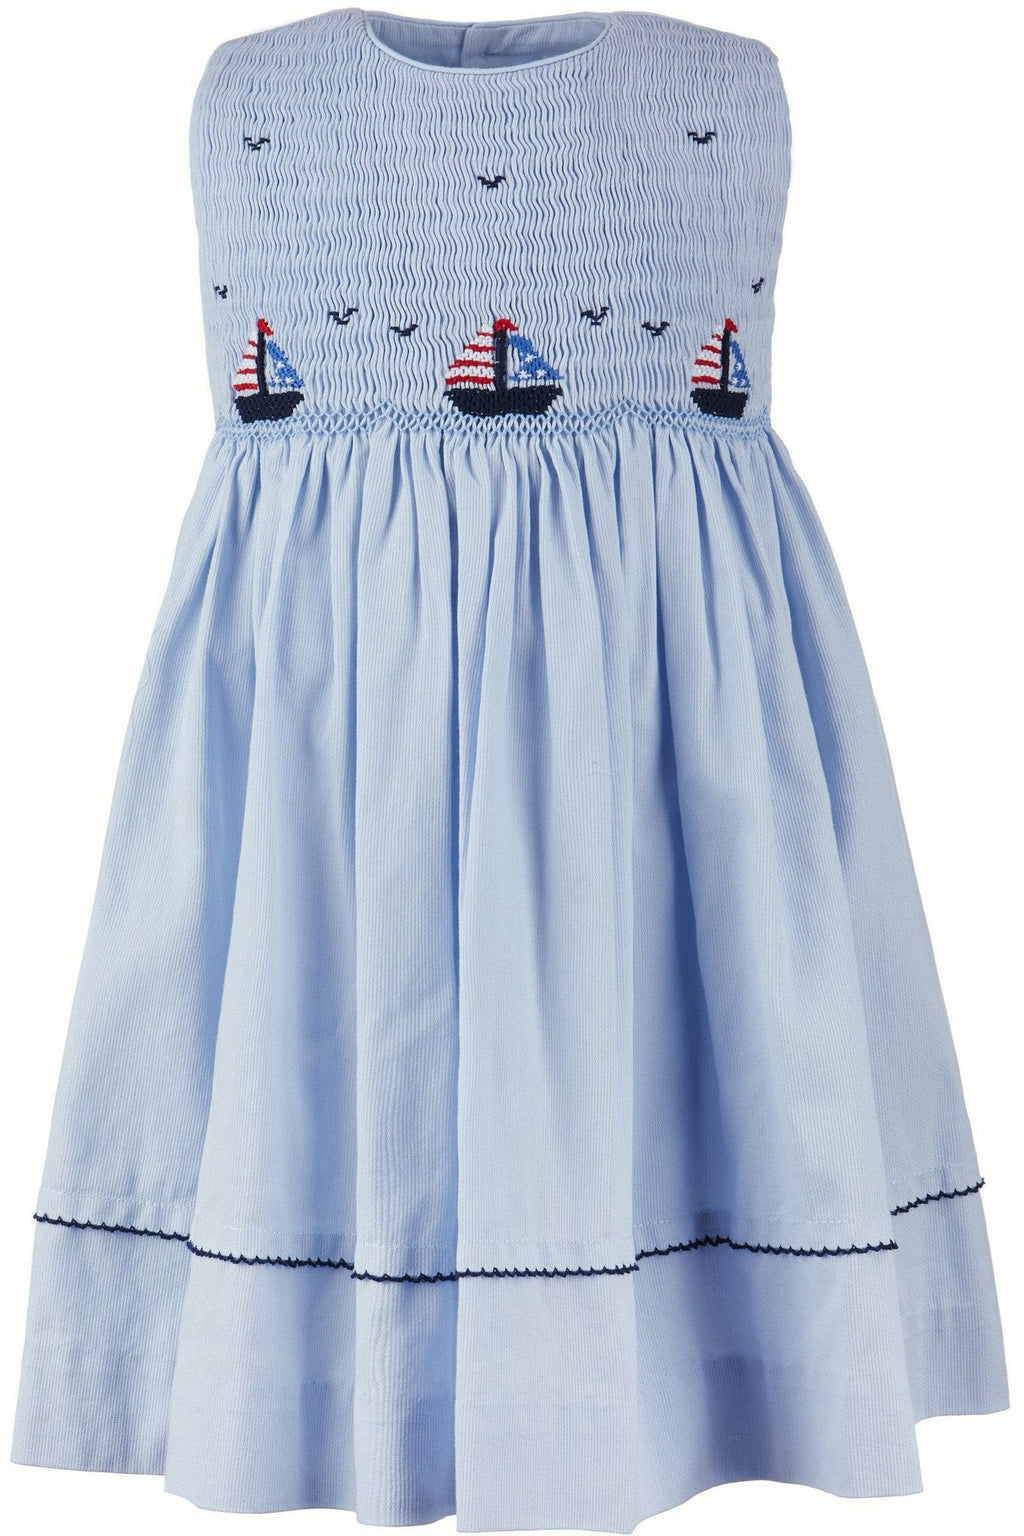 Hand Smocked Sail Boats Dress